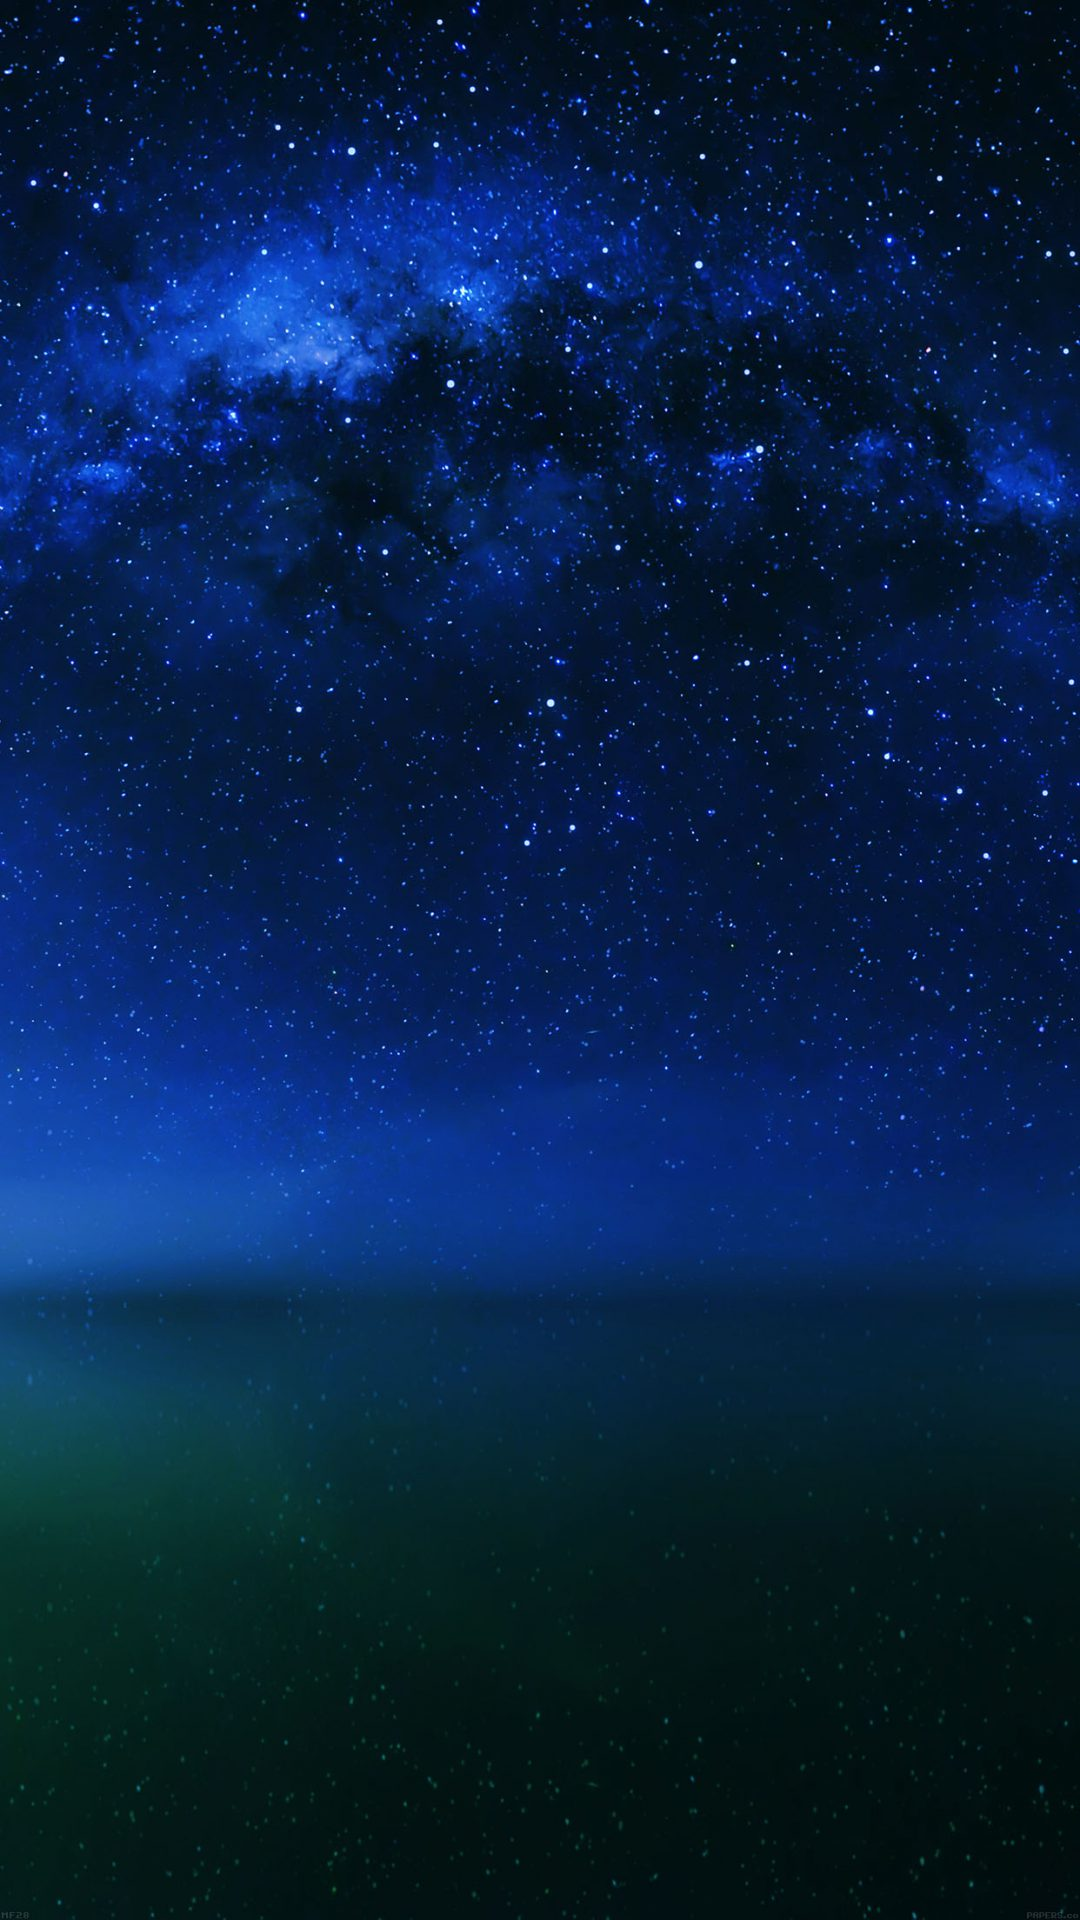 Cosmos Night Live Lake Space Starry